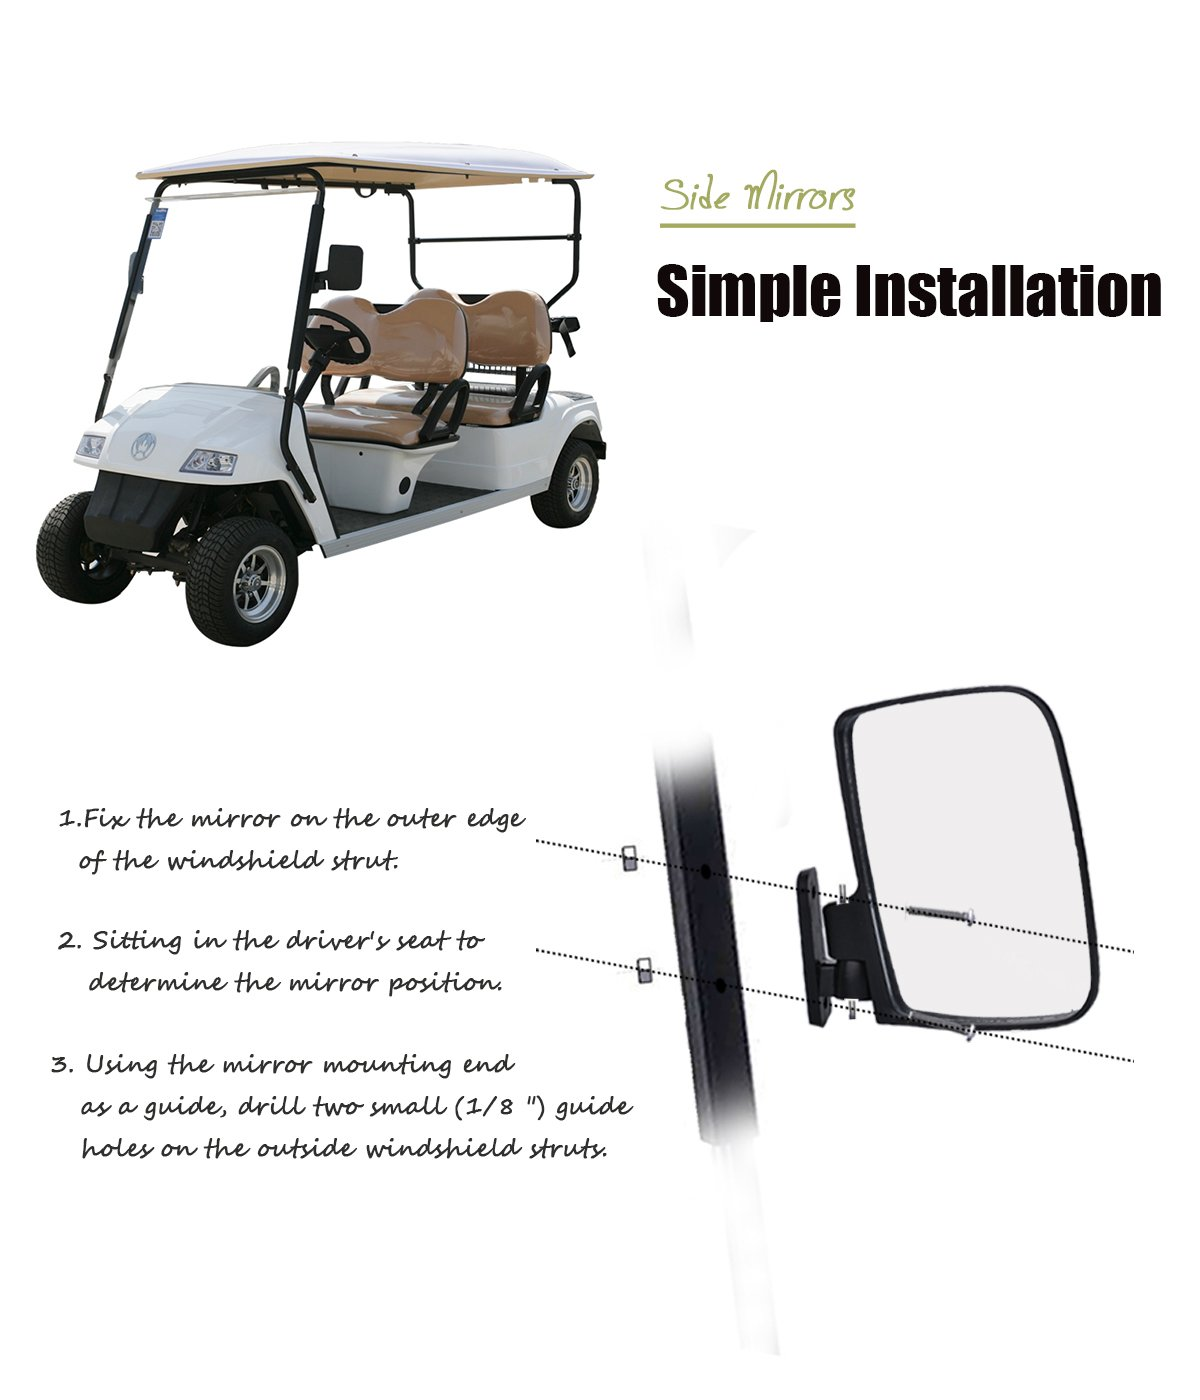 Valchoose Golf Cart Side Mirrors for EZGO Club Car Yamaha, Foldable Golf Cart Accessories by Valchoose (Image #3)